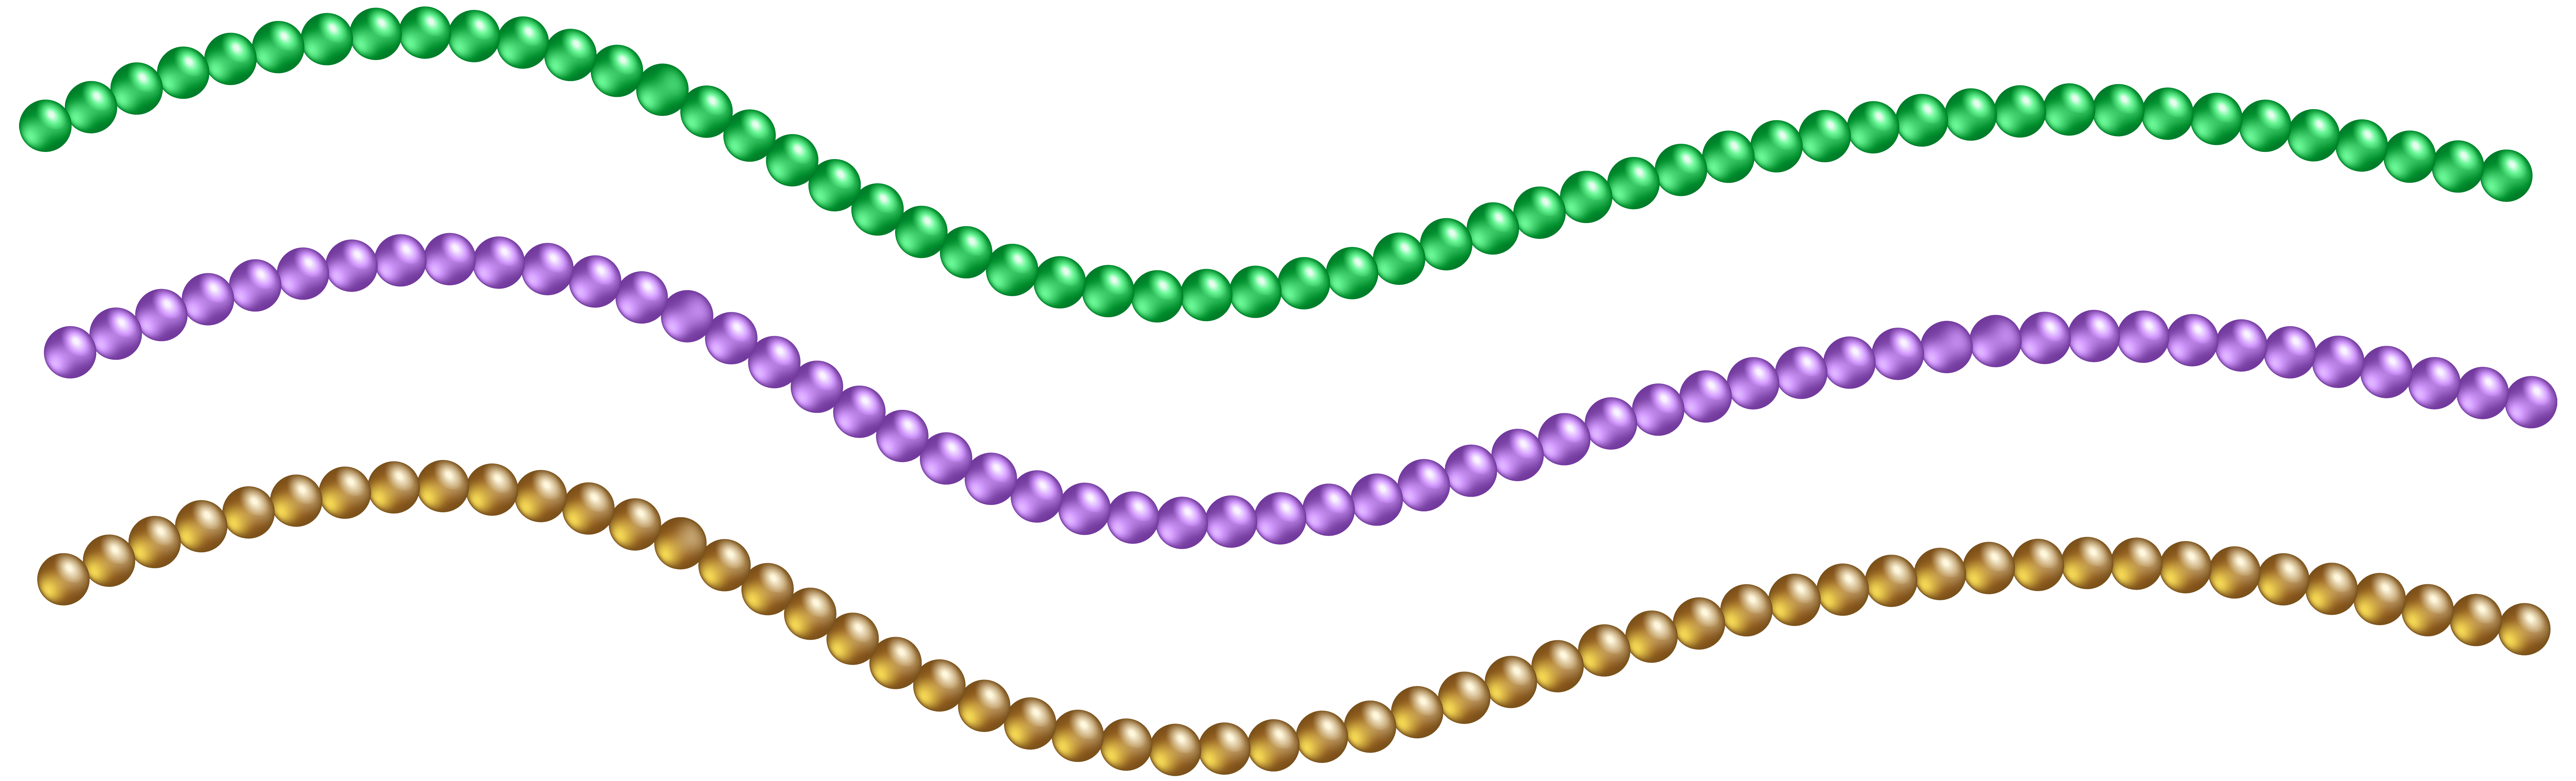 Beads Decoration PNG Clip Art Image.